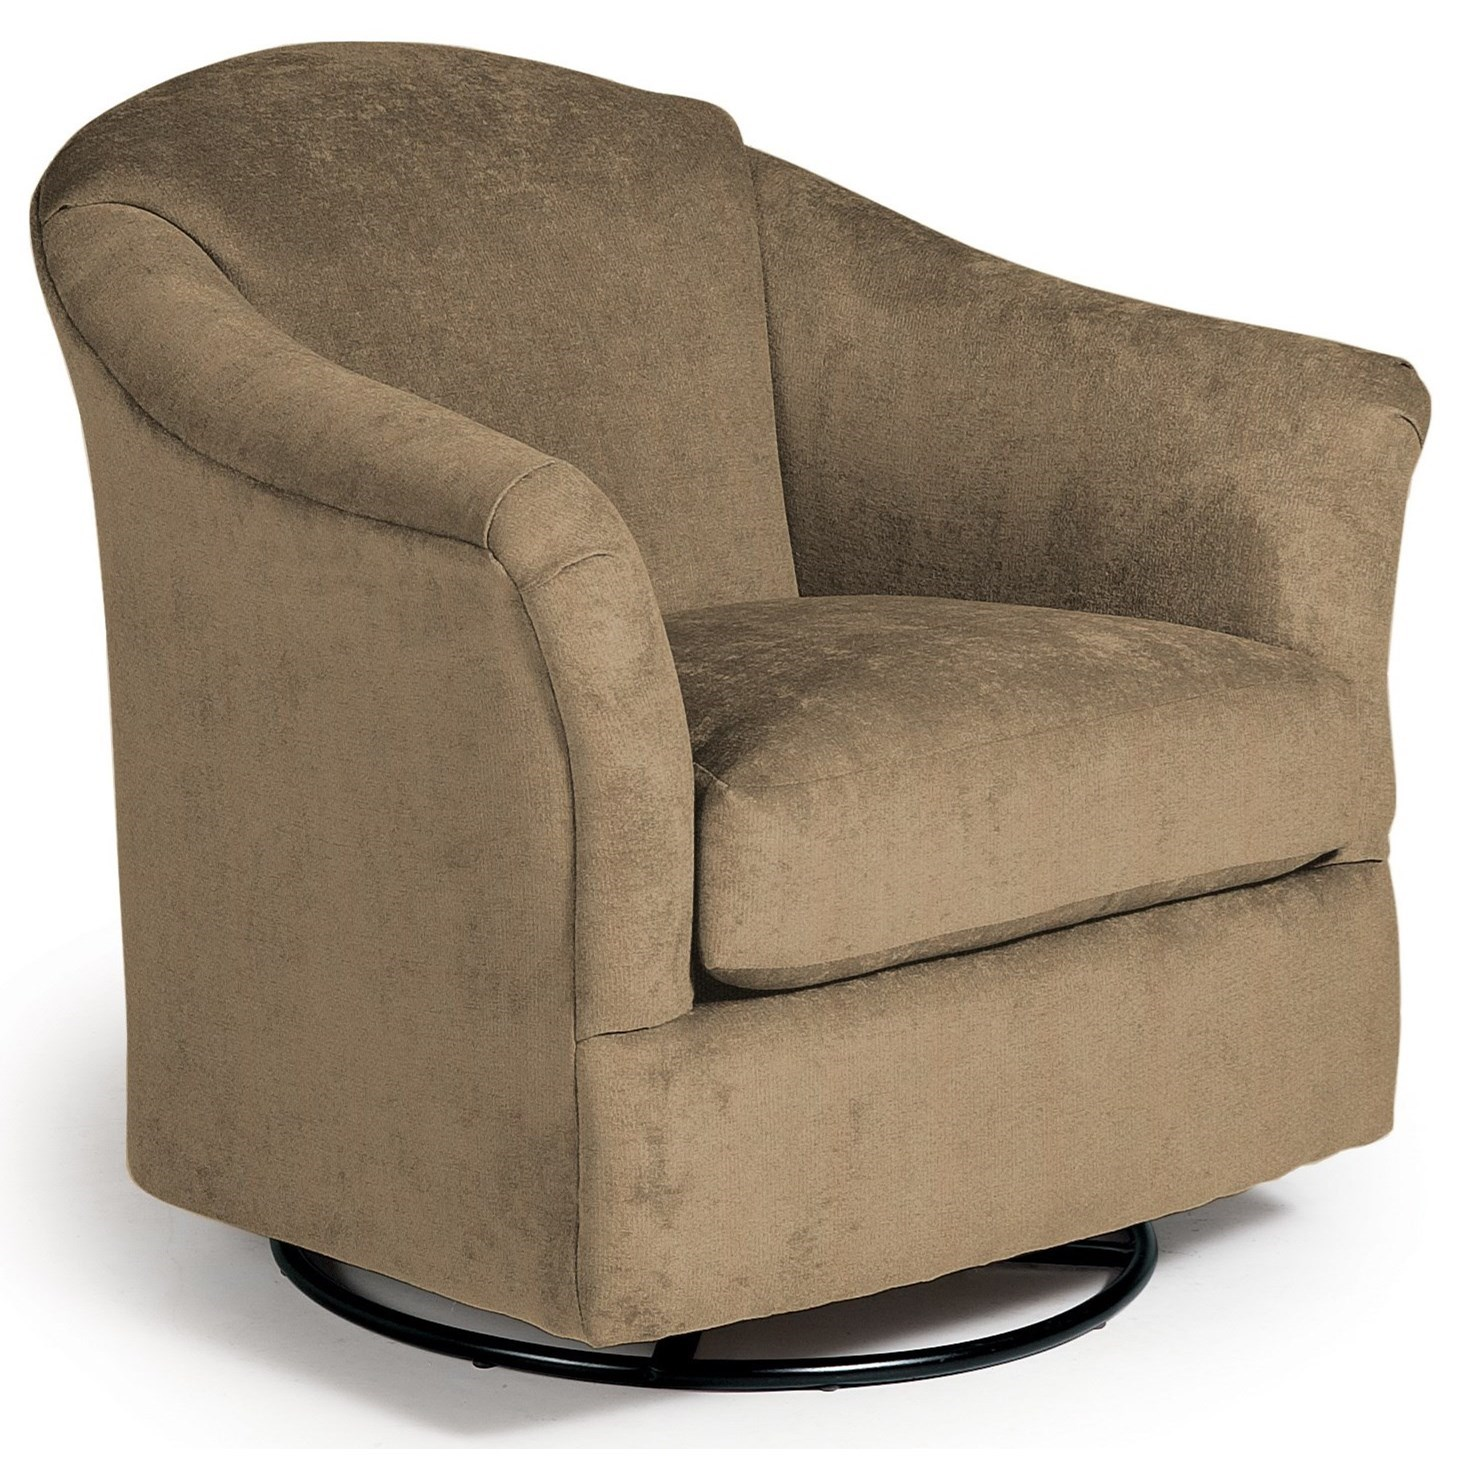 Swivel Glide Chairs Darby Swivel Glider by Best Home Furnishings at Steger's Furniture